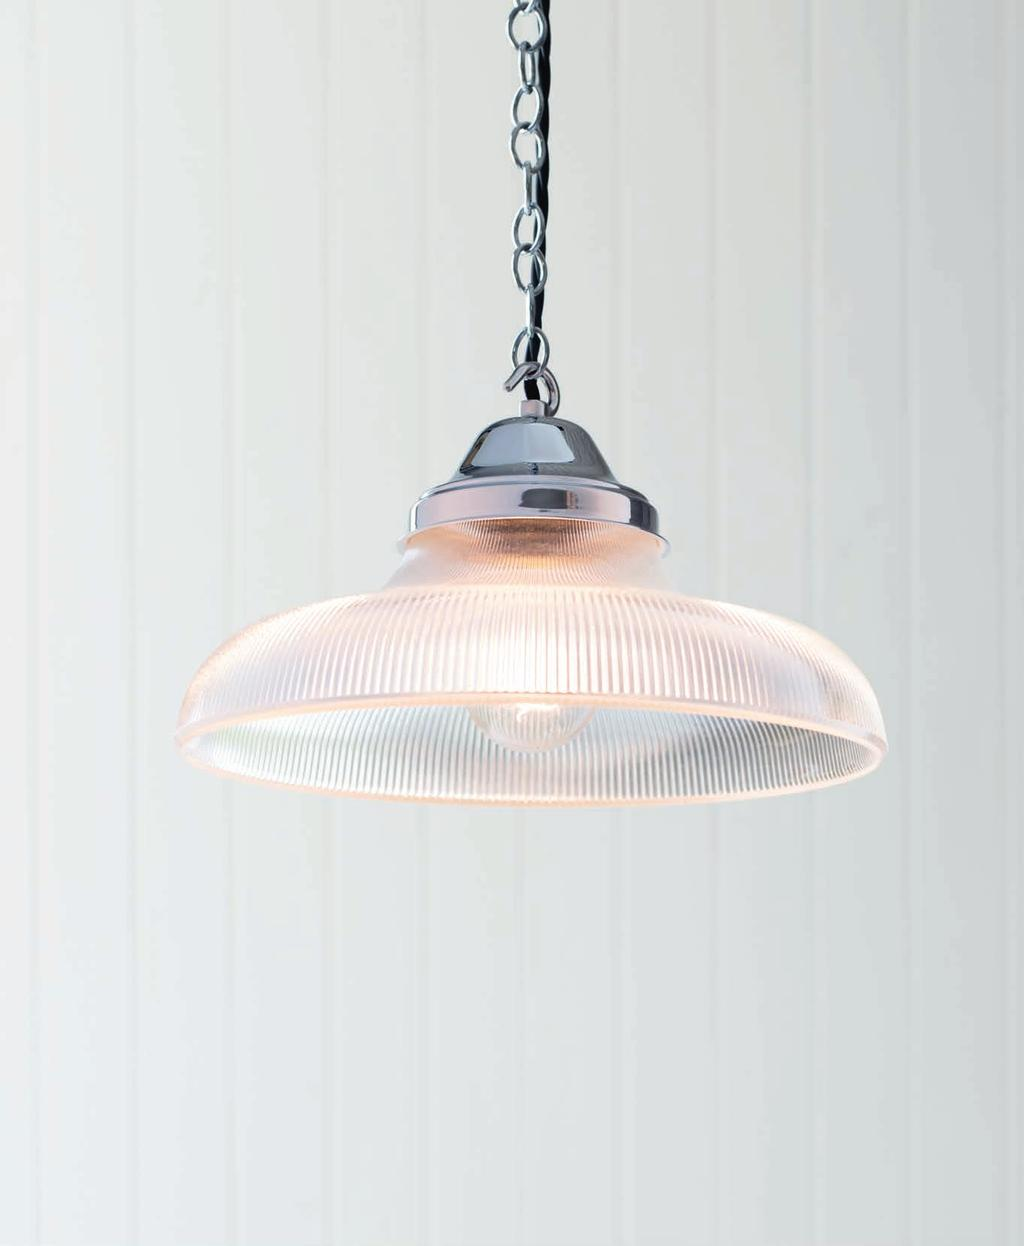 Lighting Part 1 12 Pendant 58 Flush Fitting Lights 60 Wall Electrical Wiring Junction Further Ceiling Rose Flex Fifth Matt Black Plain Ivory Solid Brass Nickel Plated Forged Iron 15 11 11cm 3117 7820